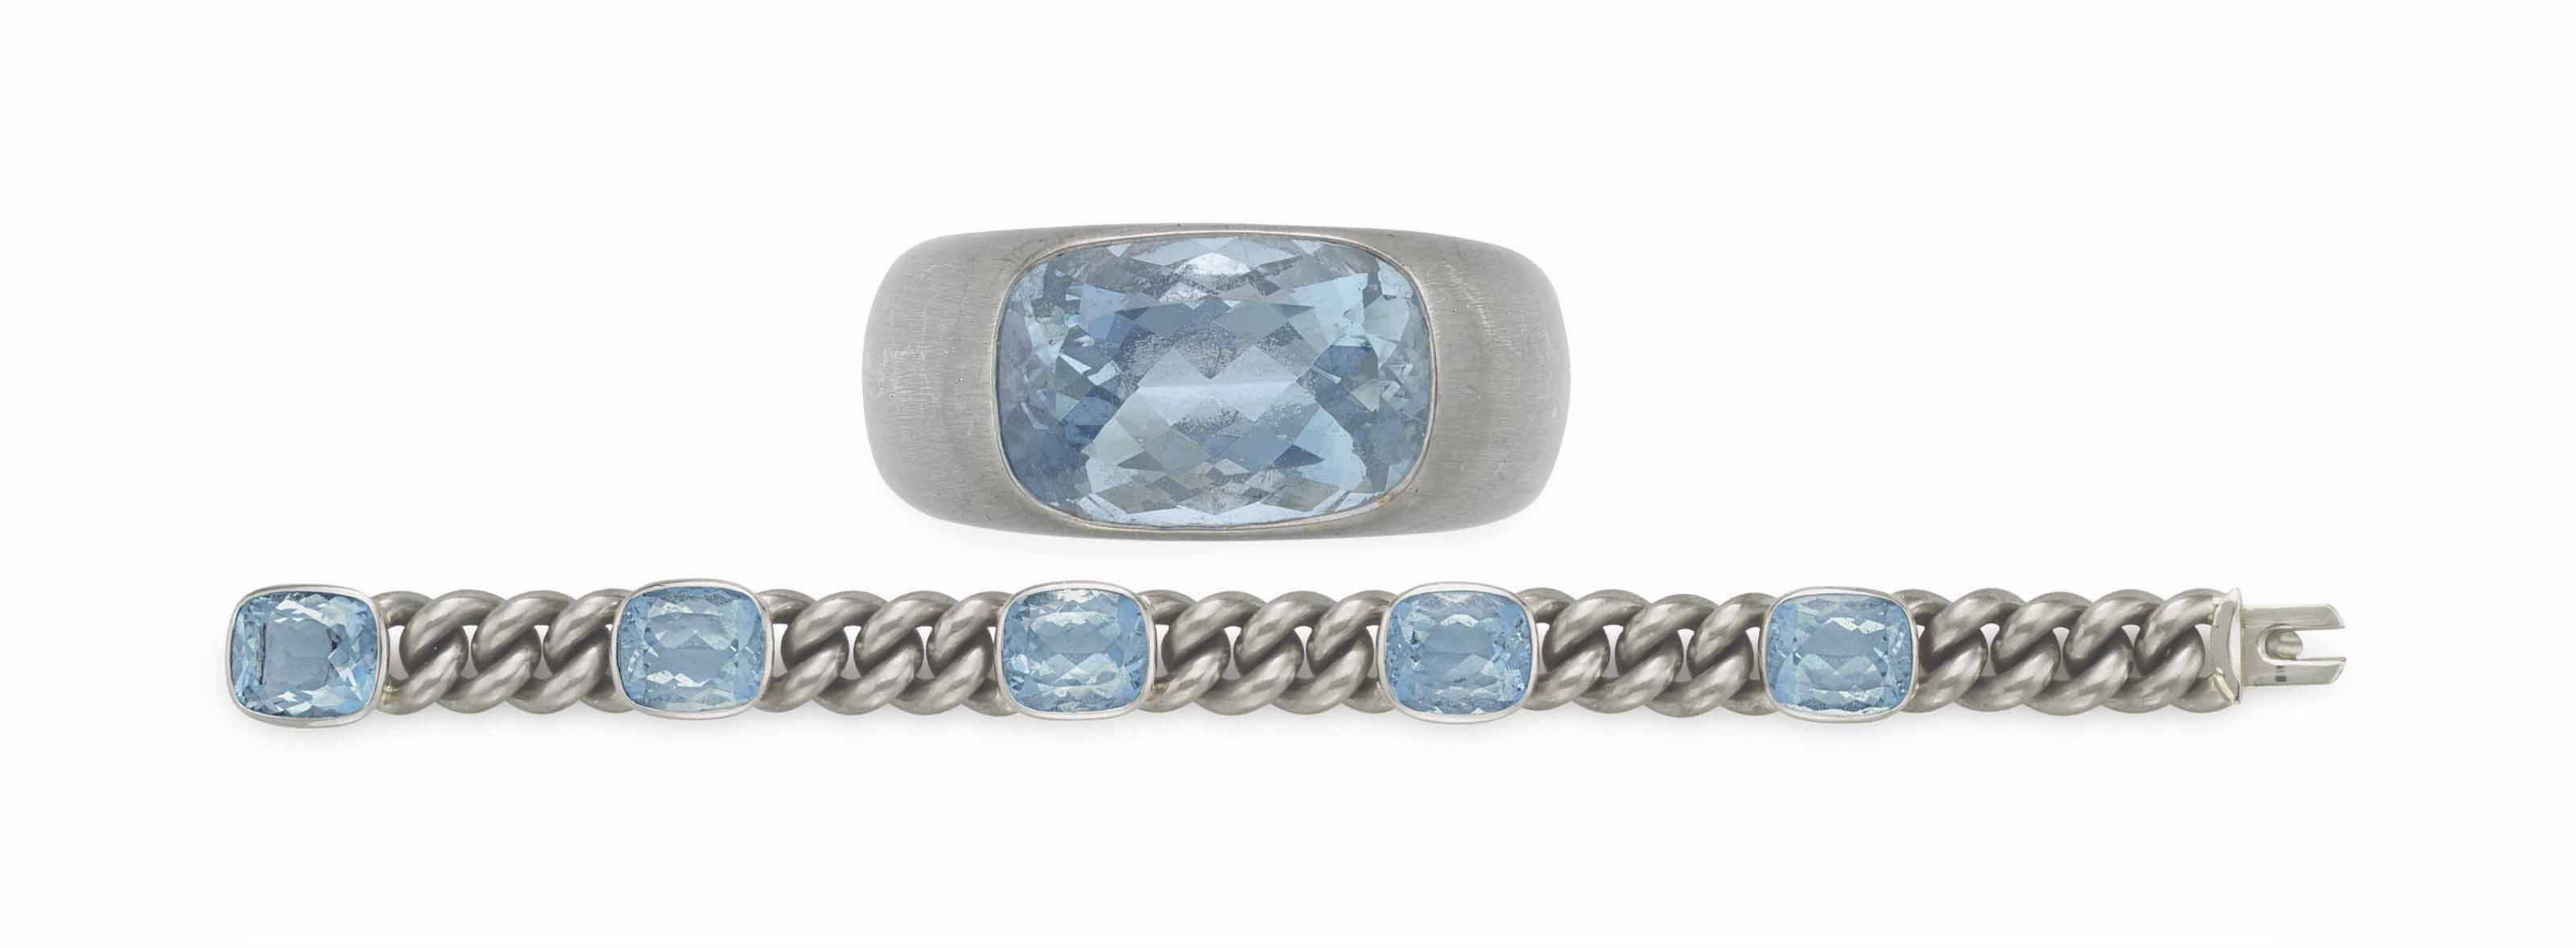 A GROUP OF WHITE GOLD AND AQUAMARINE JEWELRY, BY HEMMERLE